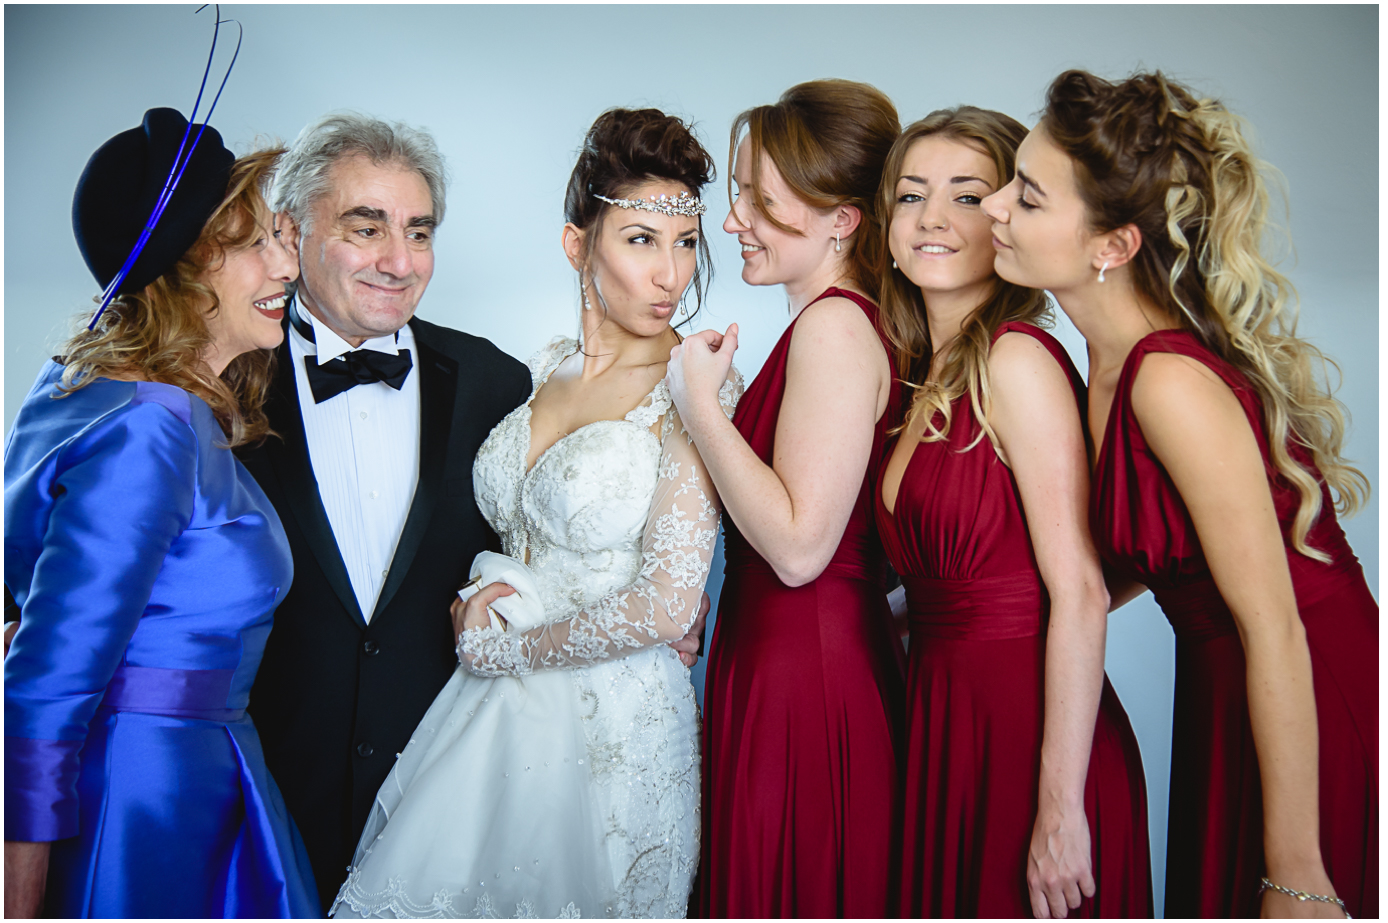 iranian wedding photographer 35 - Drapers Hall London Wedding Photographer